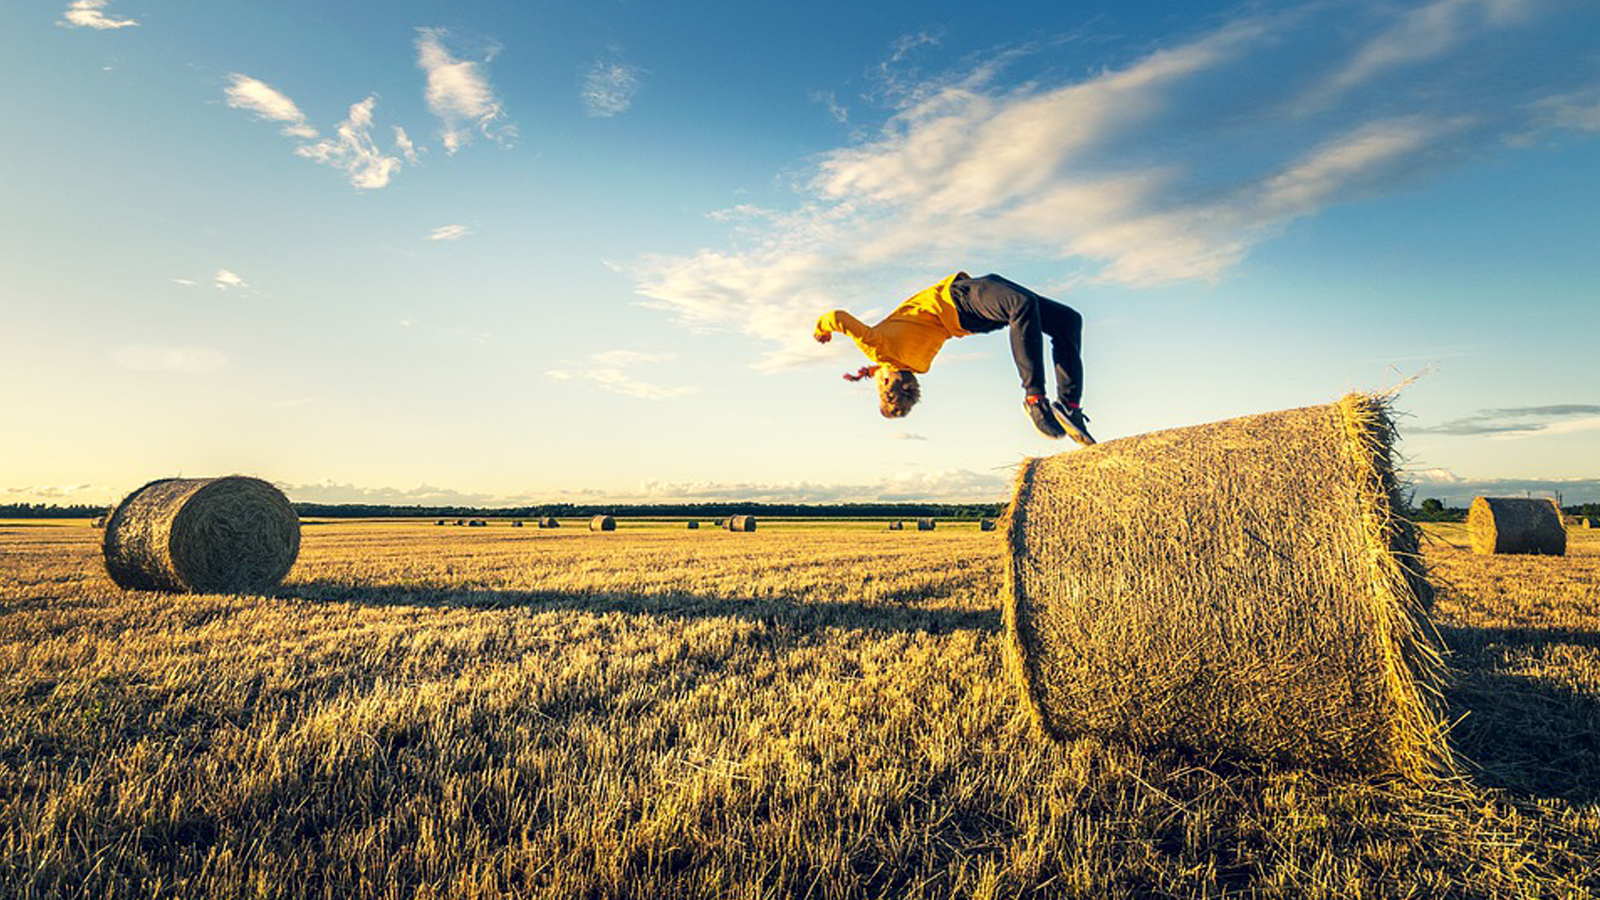 A young man in a yellow shirt does a back flip off a hay bale in a field with other hale bales and a blue sky dotted with clouds in the background.